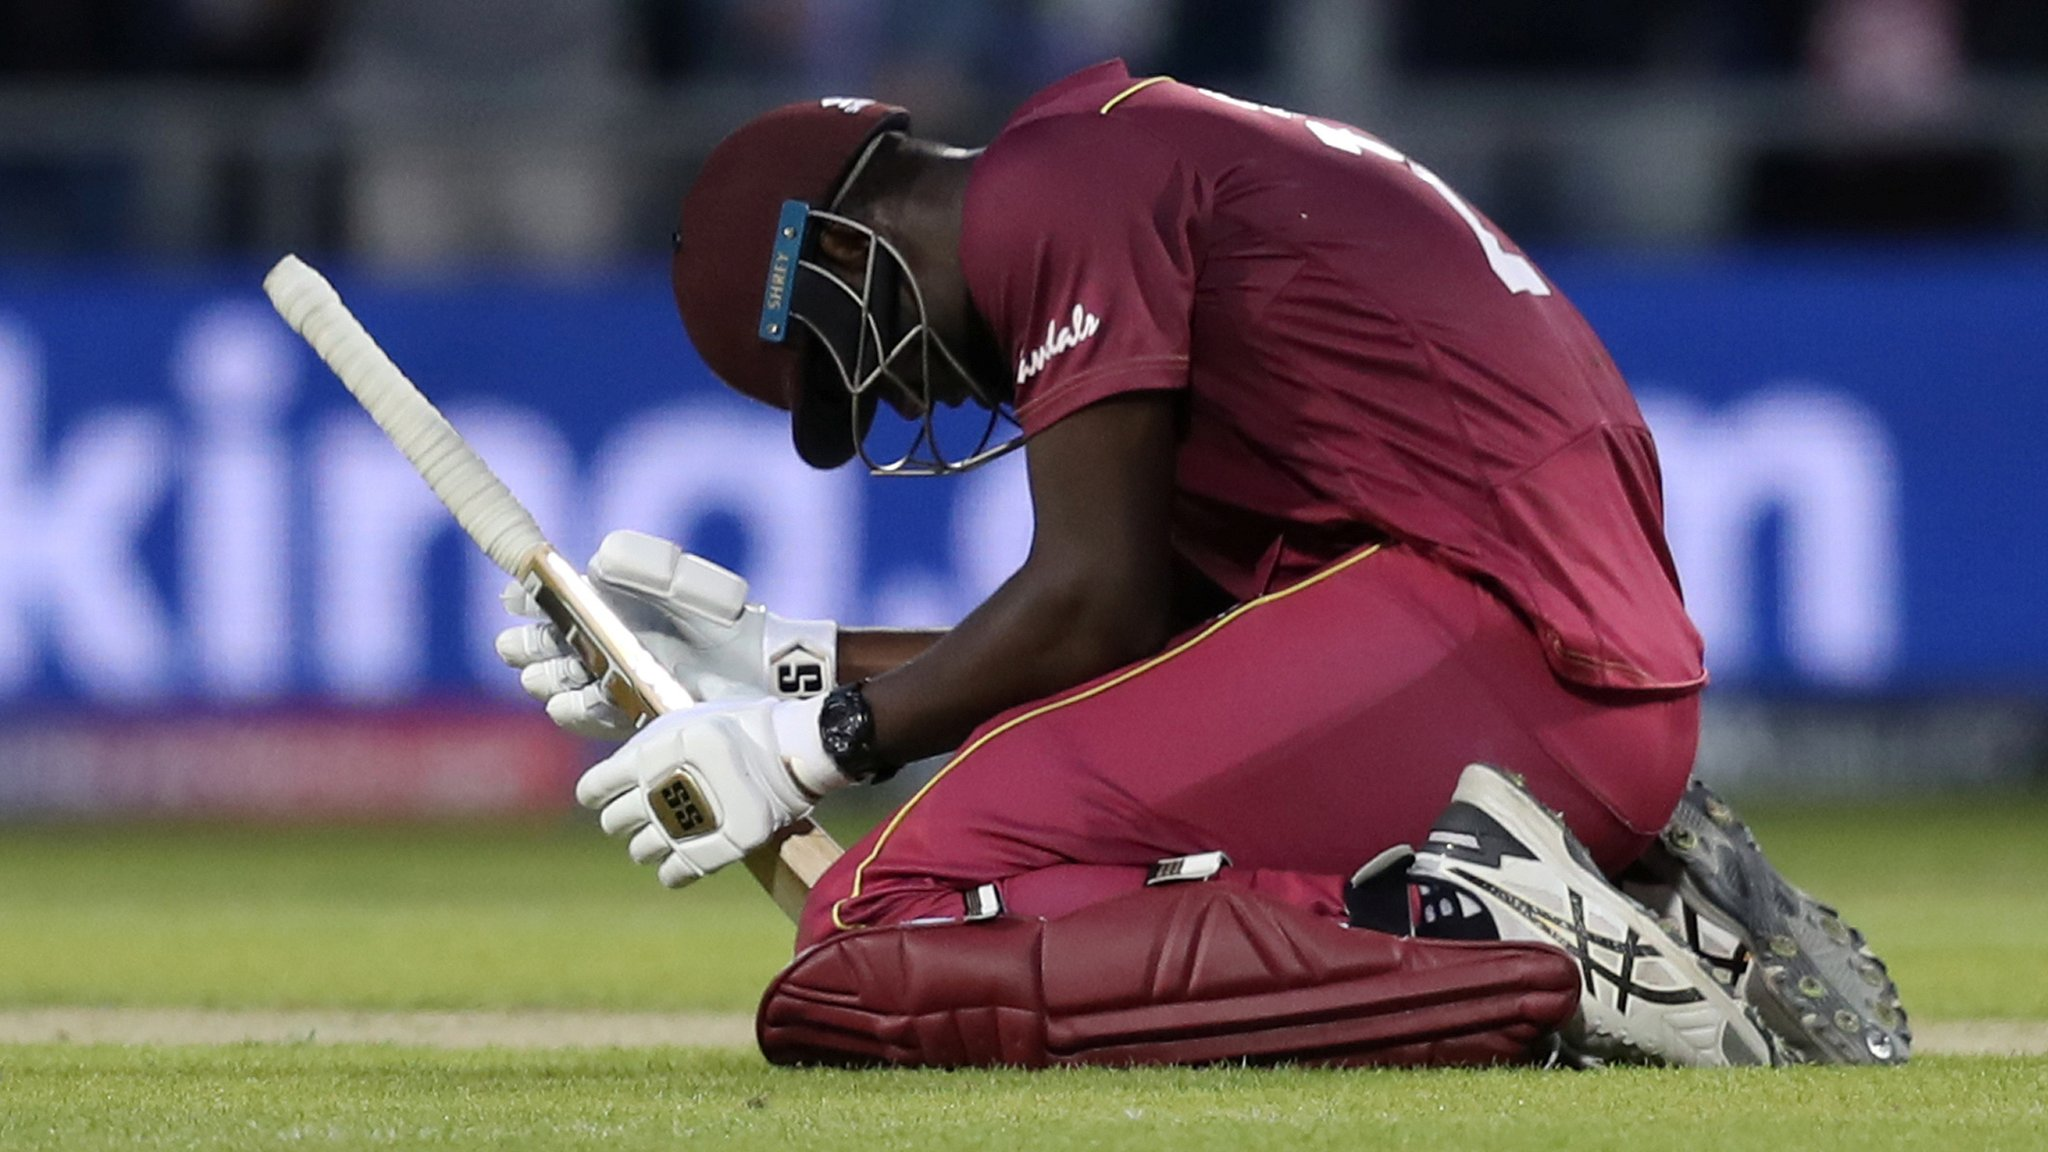 Cricket World Cup: West Indies fall just short in thriller against New Zealand